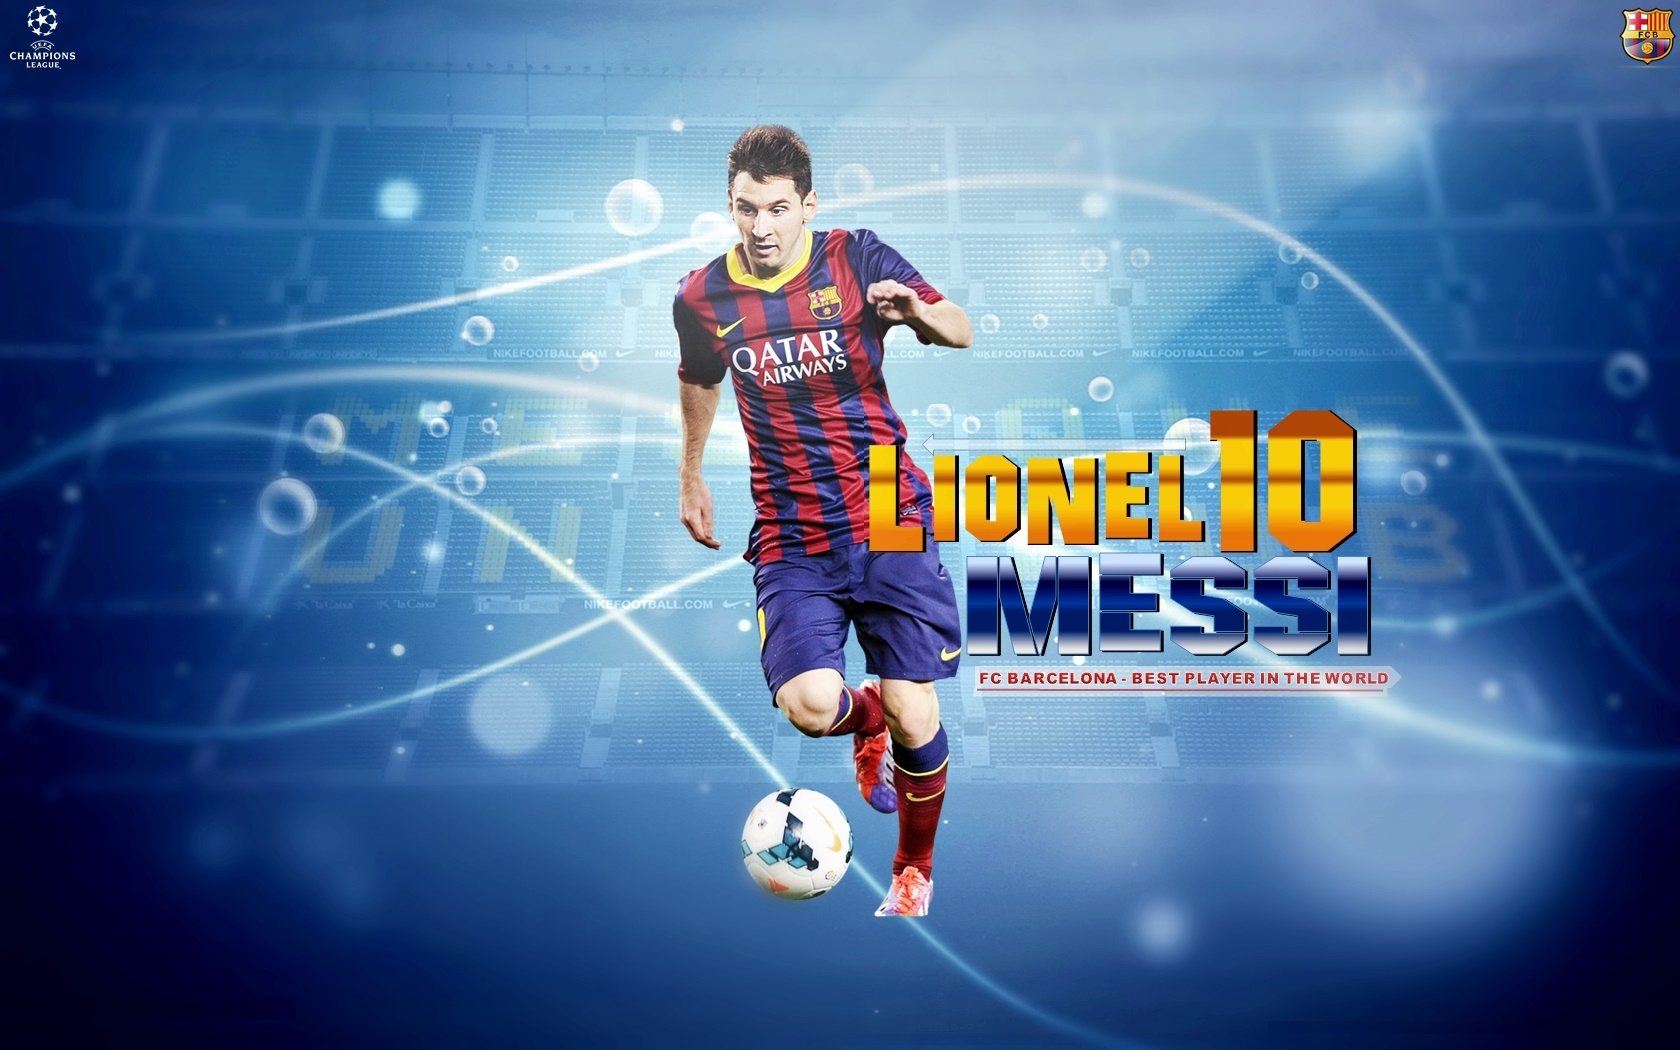 Real Madrid D Wallpapers Messi 2014 Selecci 243 N Argentina Barcelona